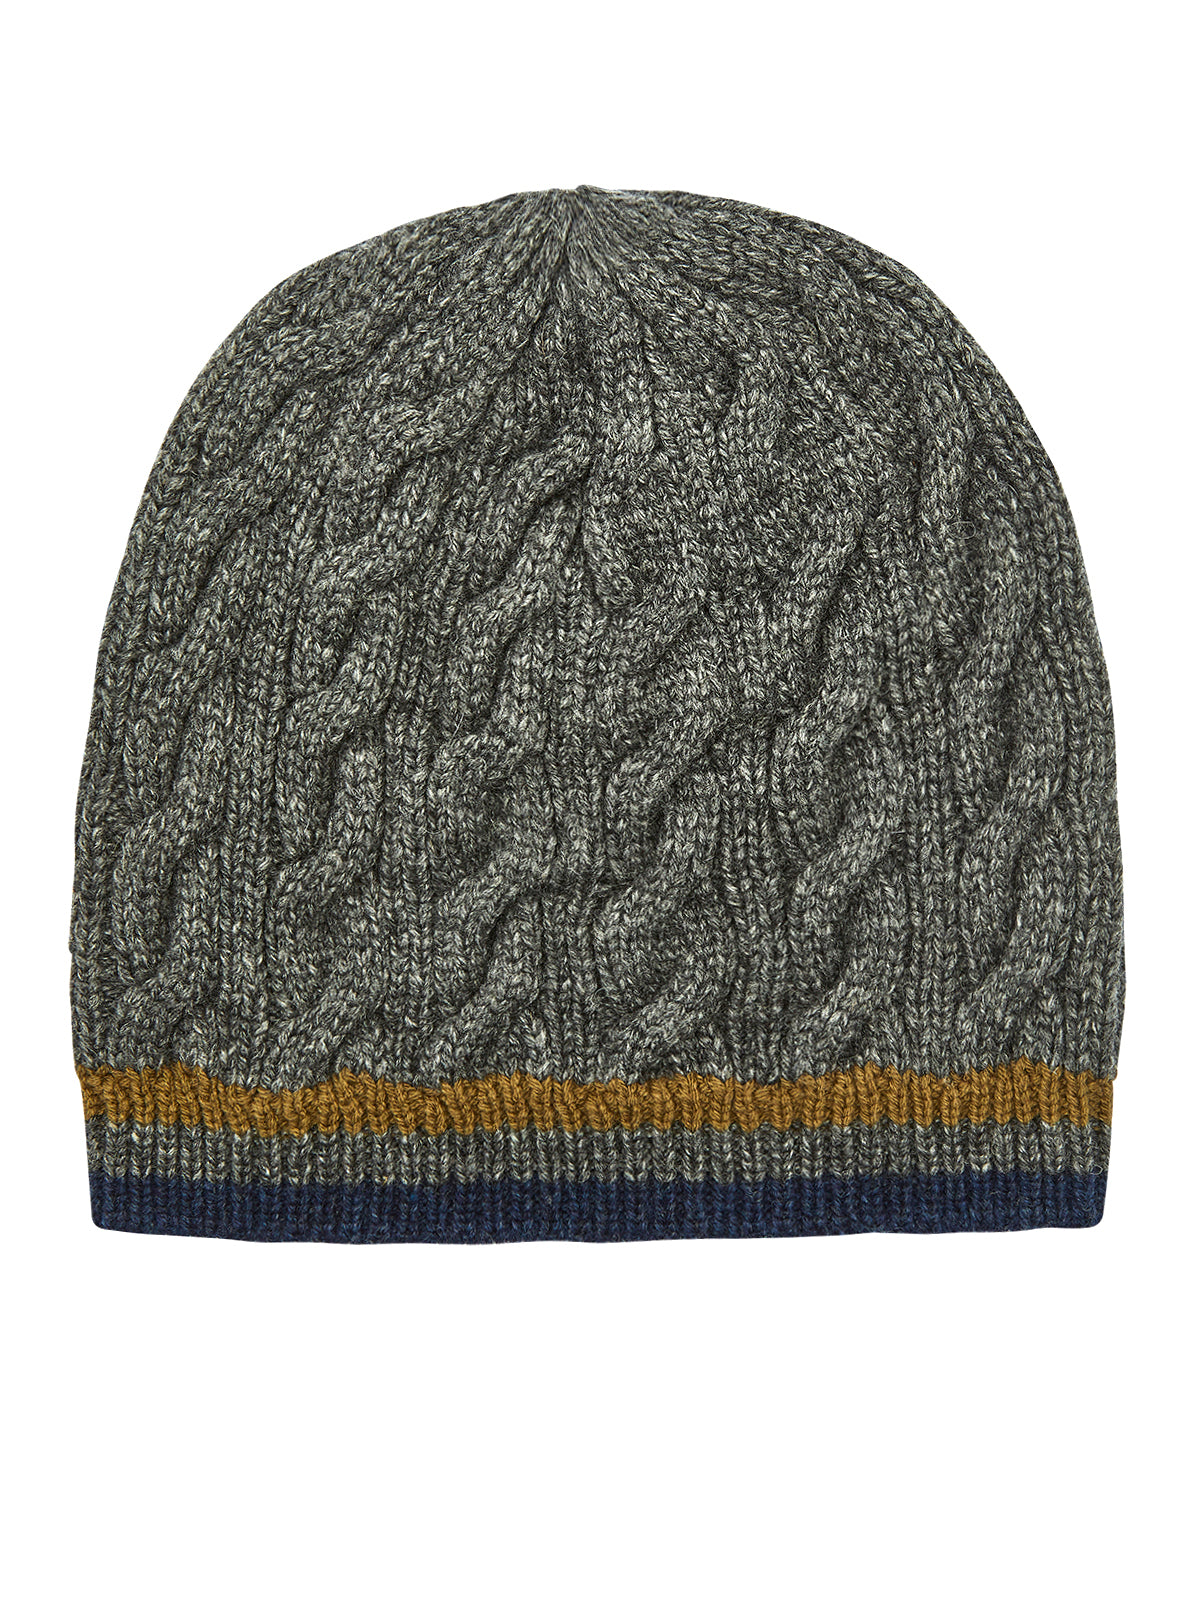 THOMAS WOOL BEANIE MELANGE GREY